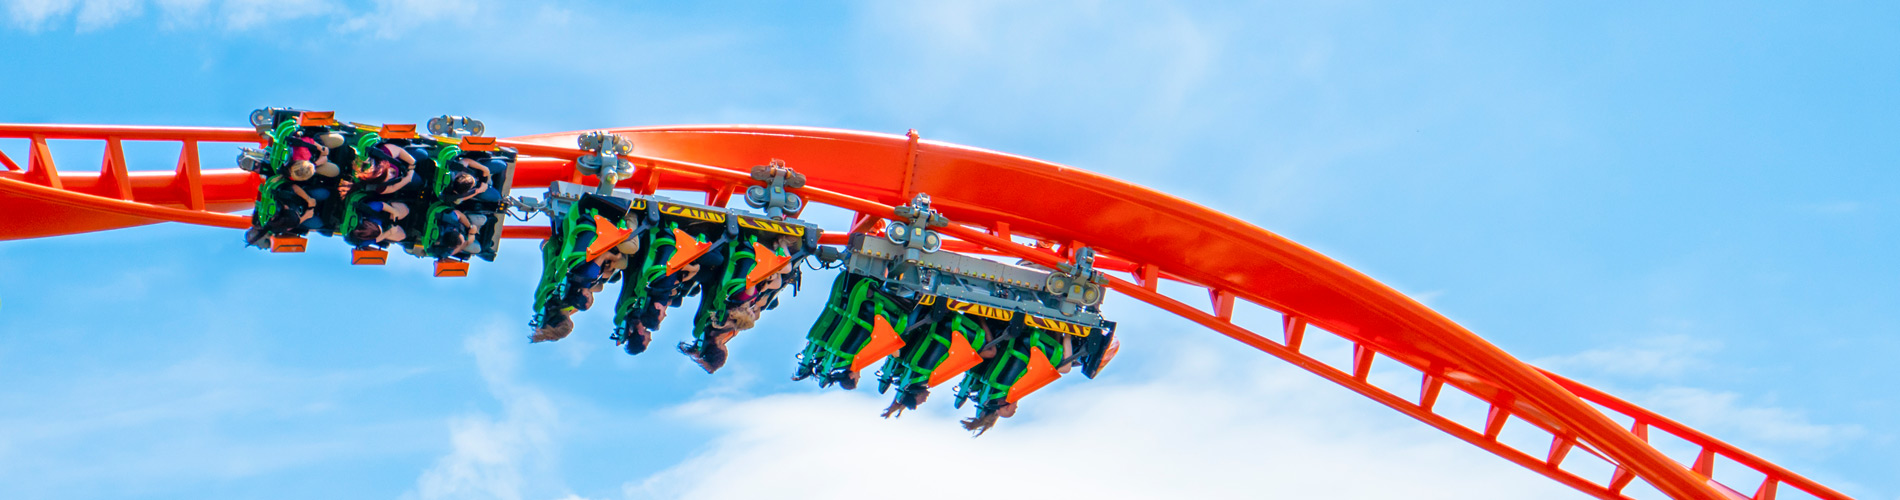 Tigris, Launch Coaster